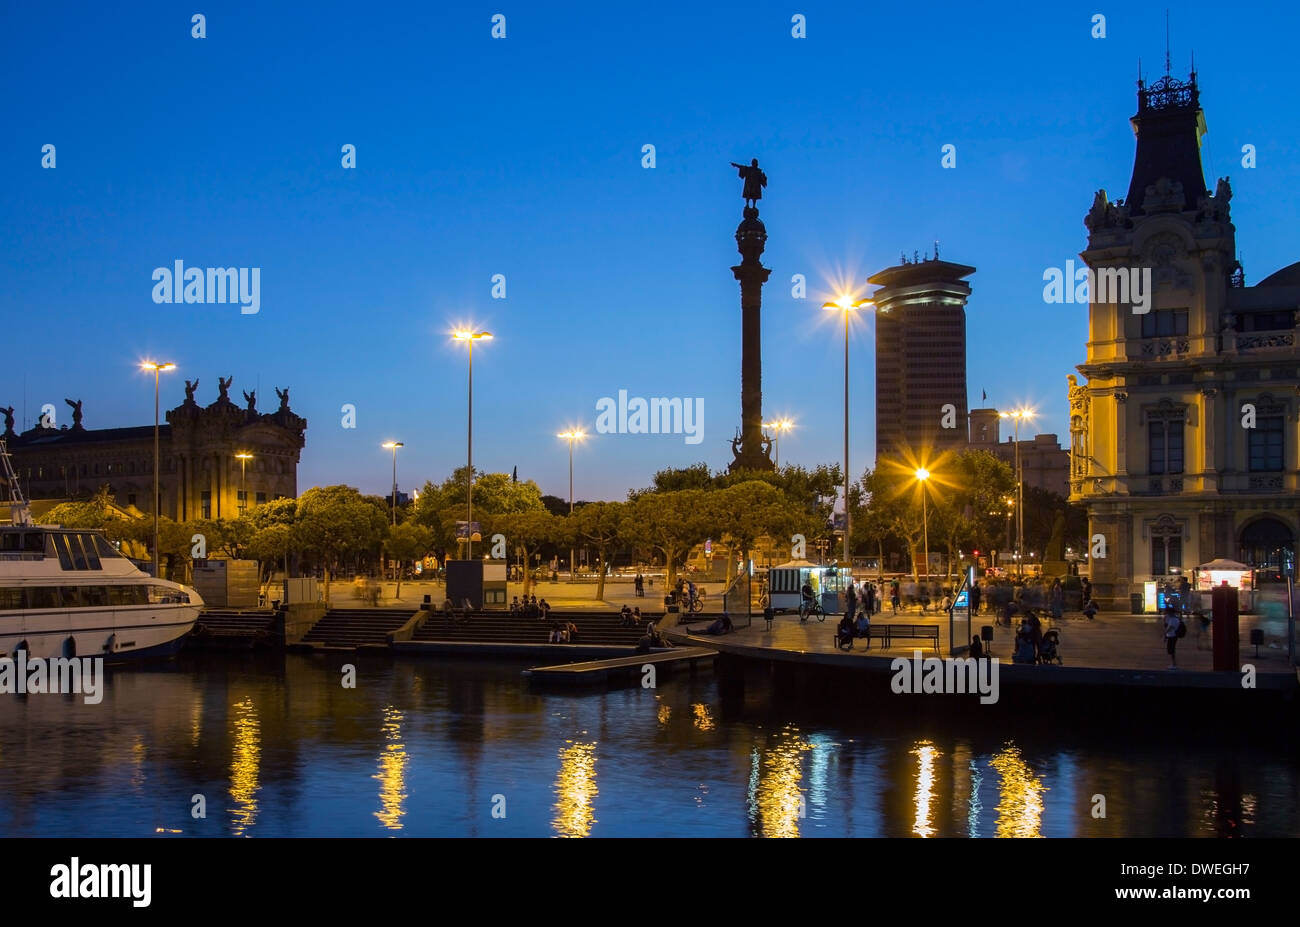 Columbus Monument (Monument a Colom) and the waterfront to Port Vell - Barcelona, Spain. - Stock Image